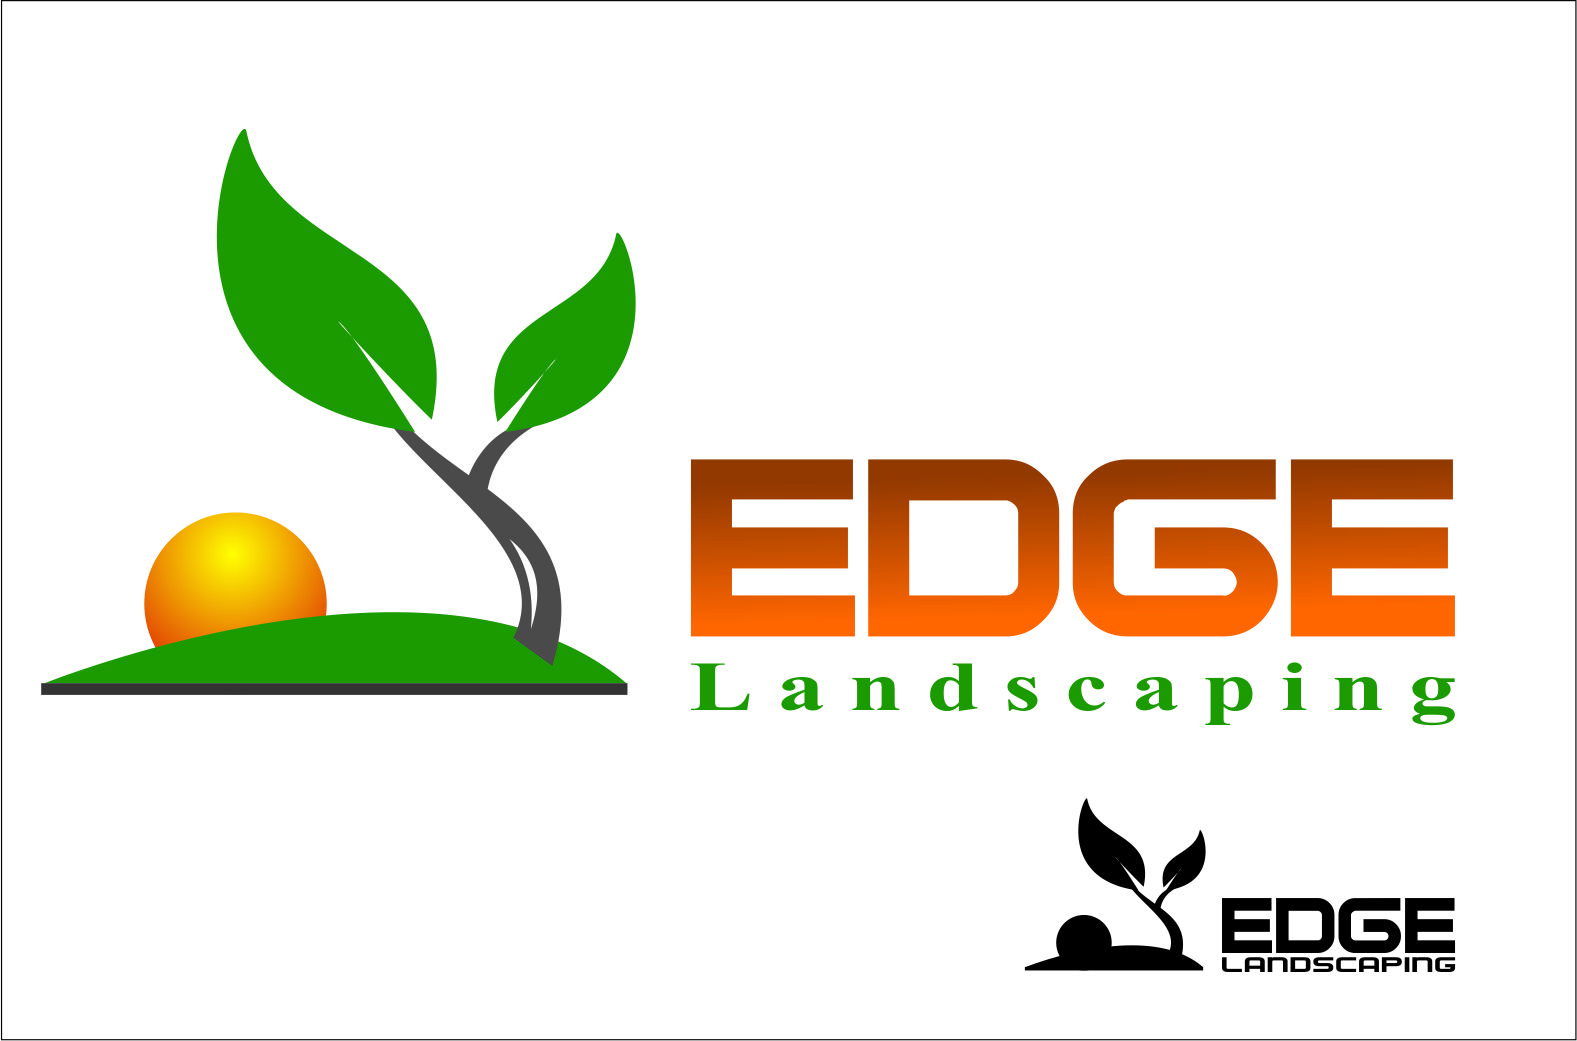 Logo Design by Agus Martoyo - Entry No. 54 in the Logo Design Contest Inspiring Logo Design for Edge Landscaping.